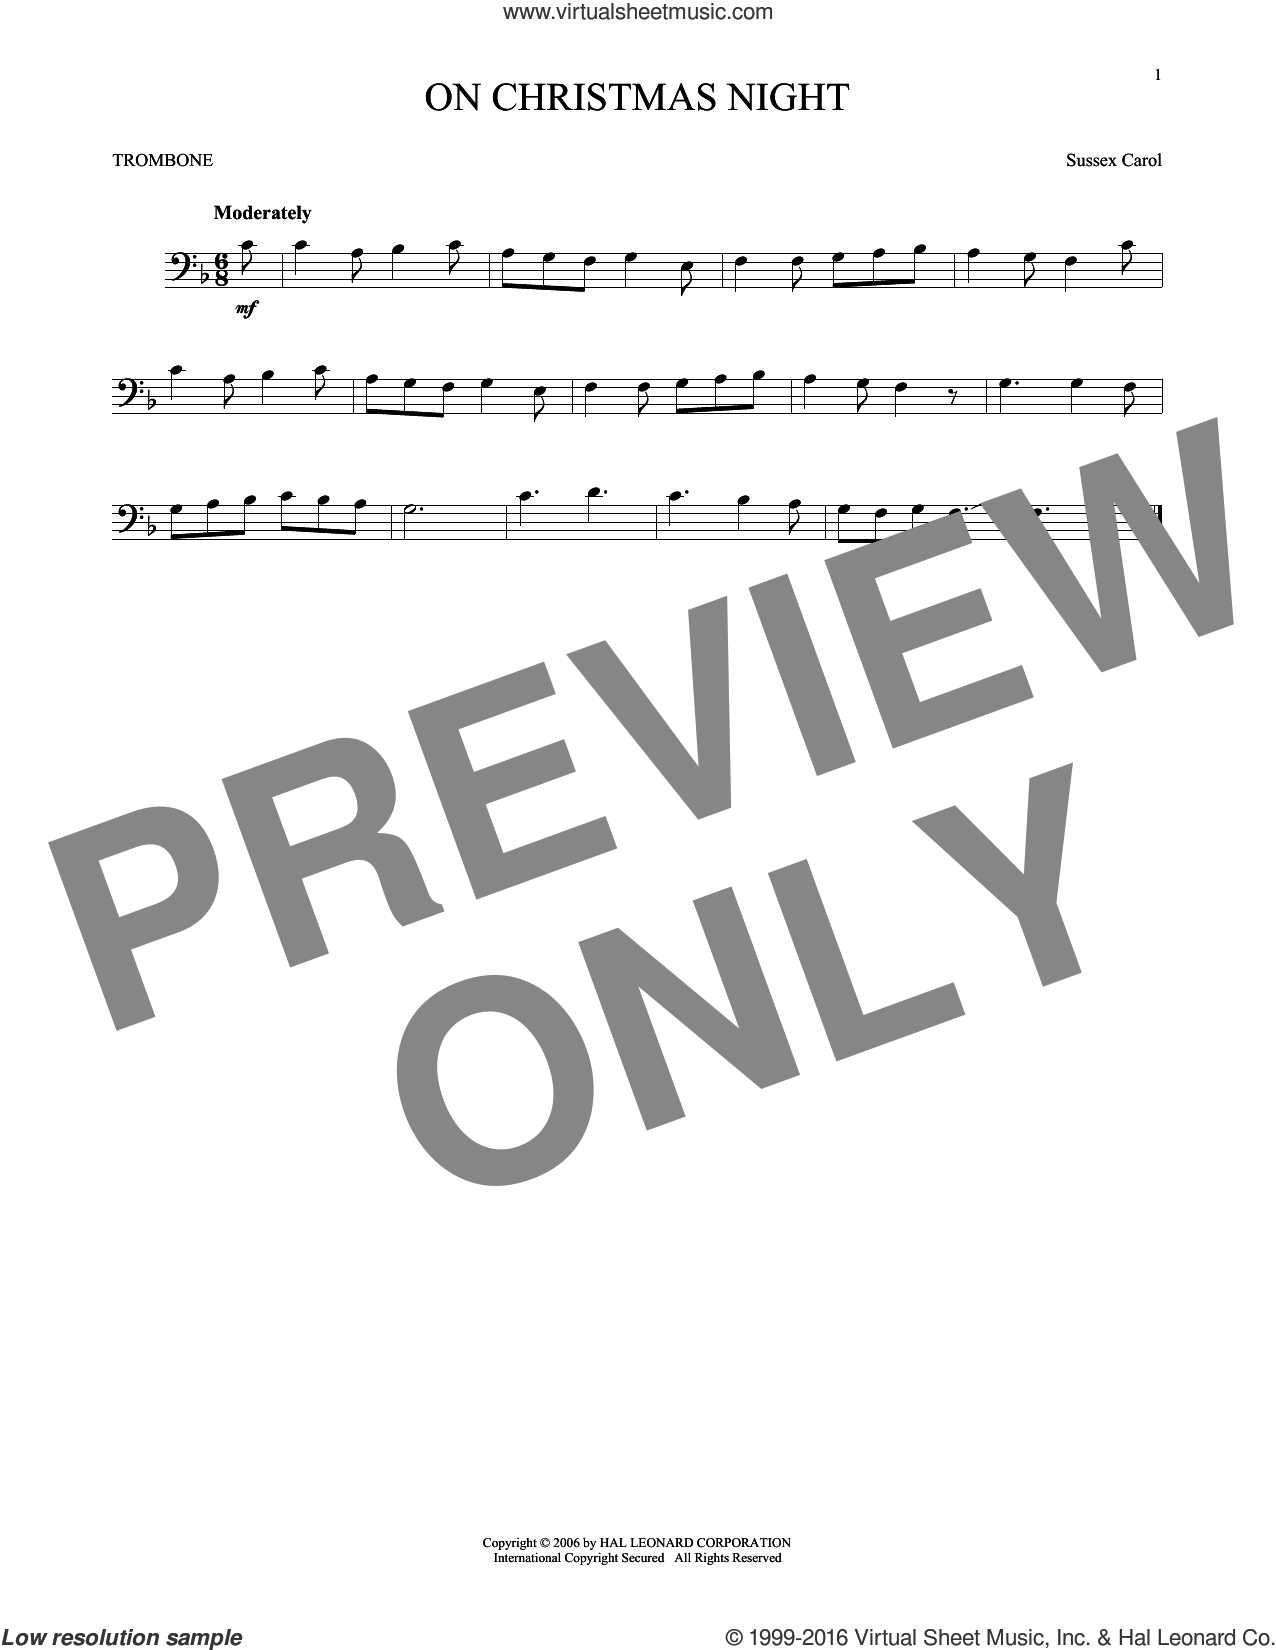 On Christmas Night sheet music for trombone solo. Score Image Preview.